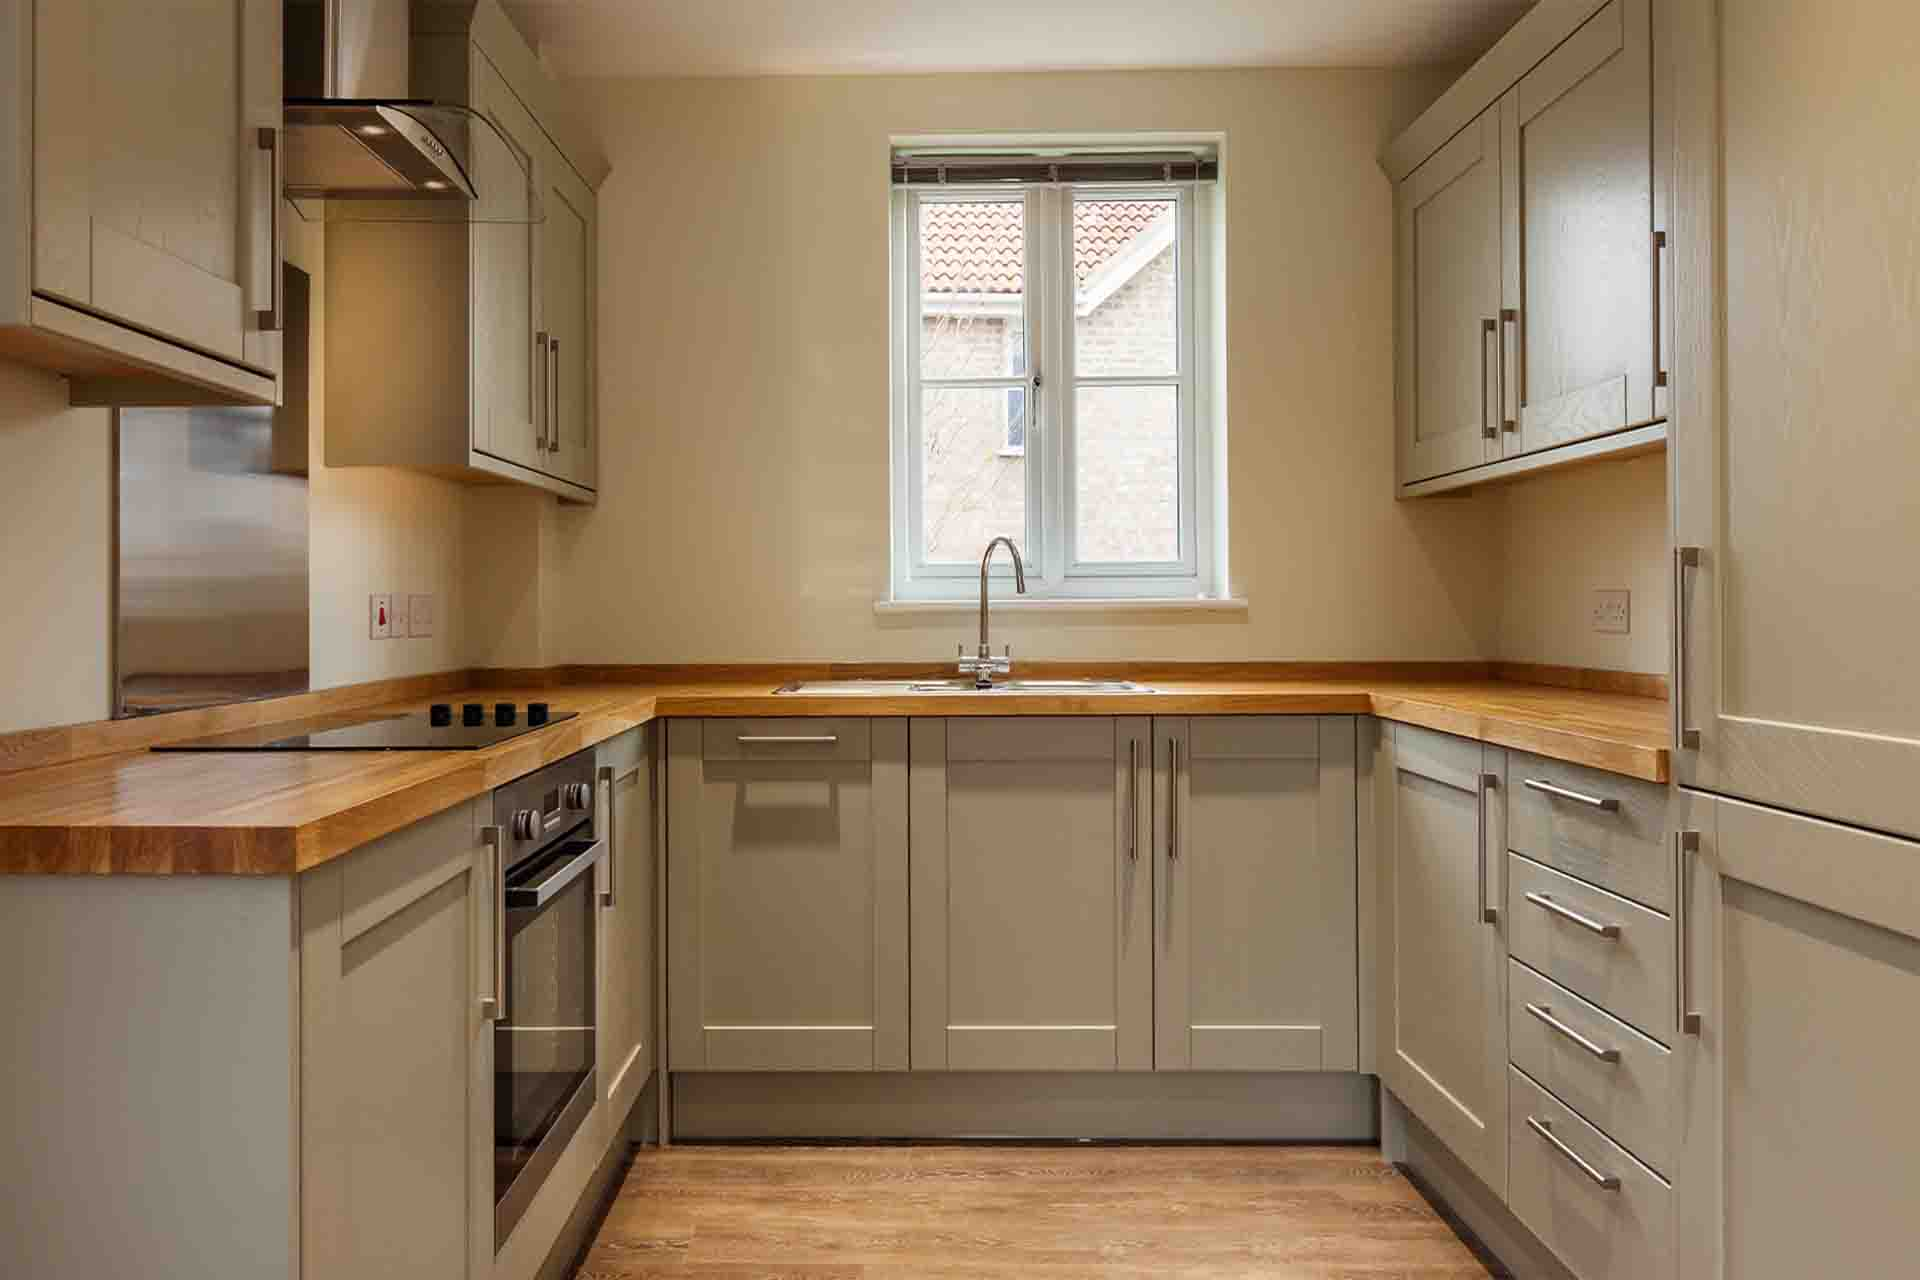 Cost To Install Kitchen Cabinets 2021 Cost Calculator